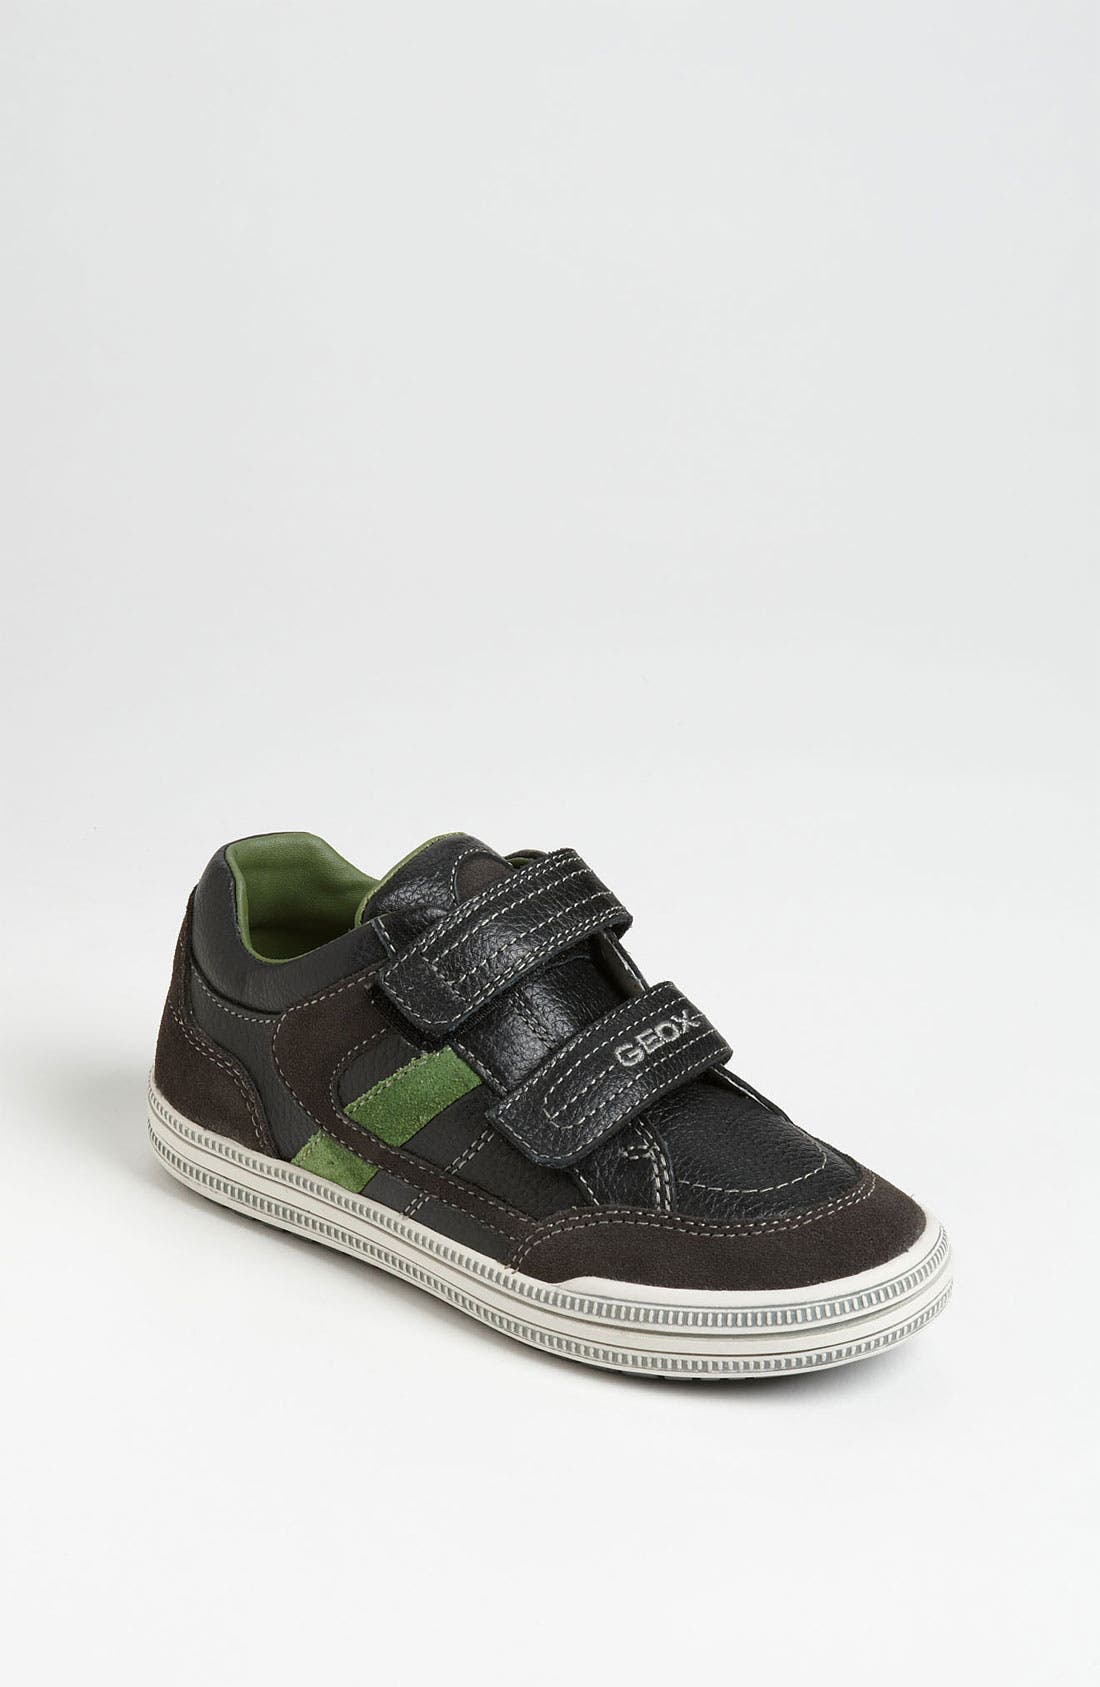 Main Image - Geox Sneaker (Toddler, Little Kid & Big Kid)